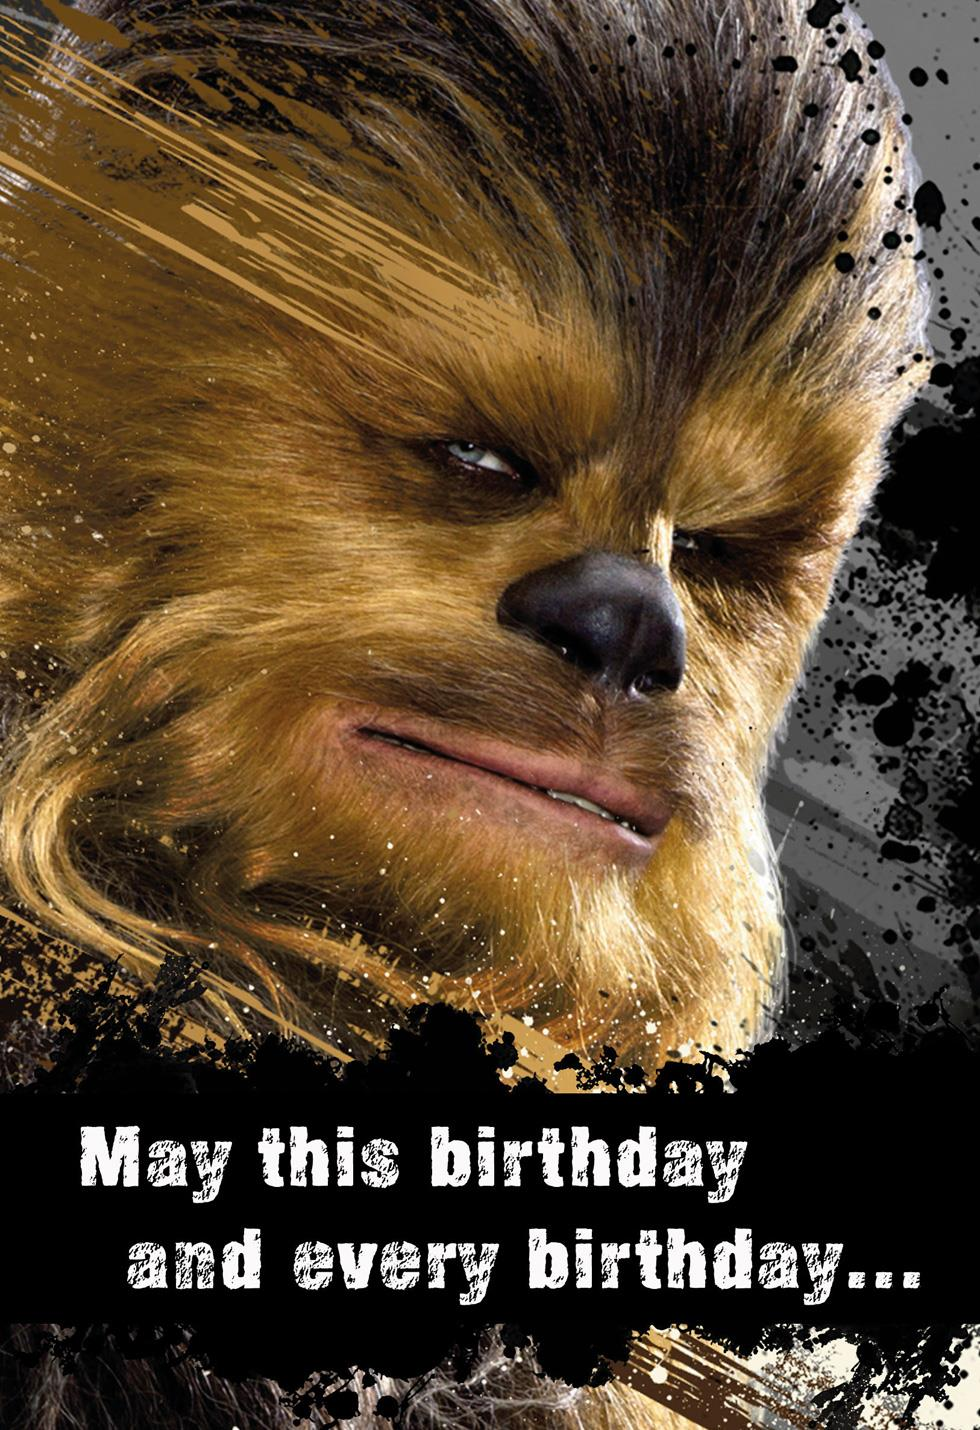 Star Wars Chewbacca Good Hair Day Birthday Sound Card  End of Life  Hallmark